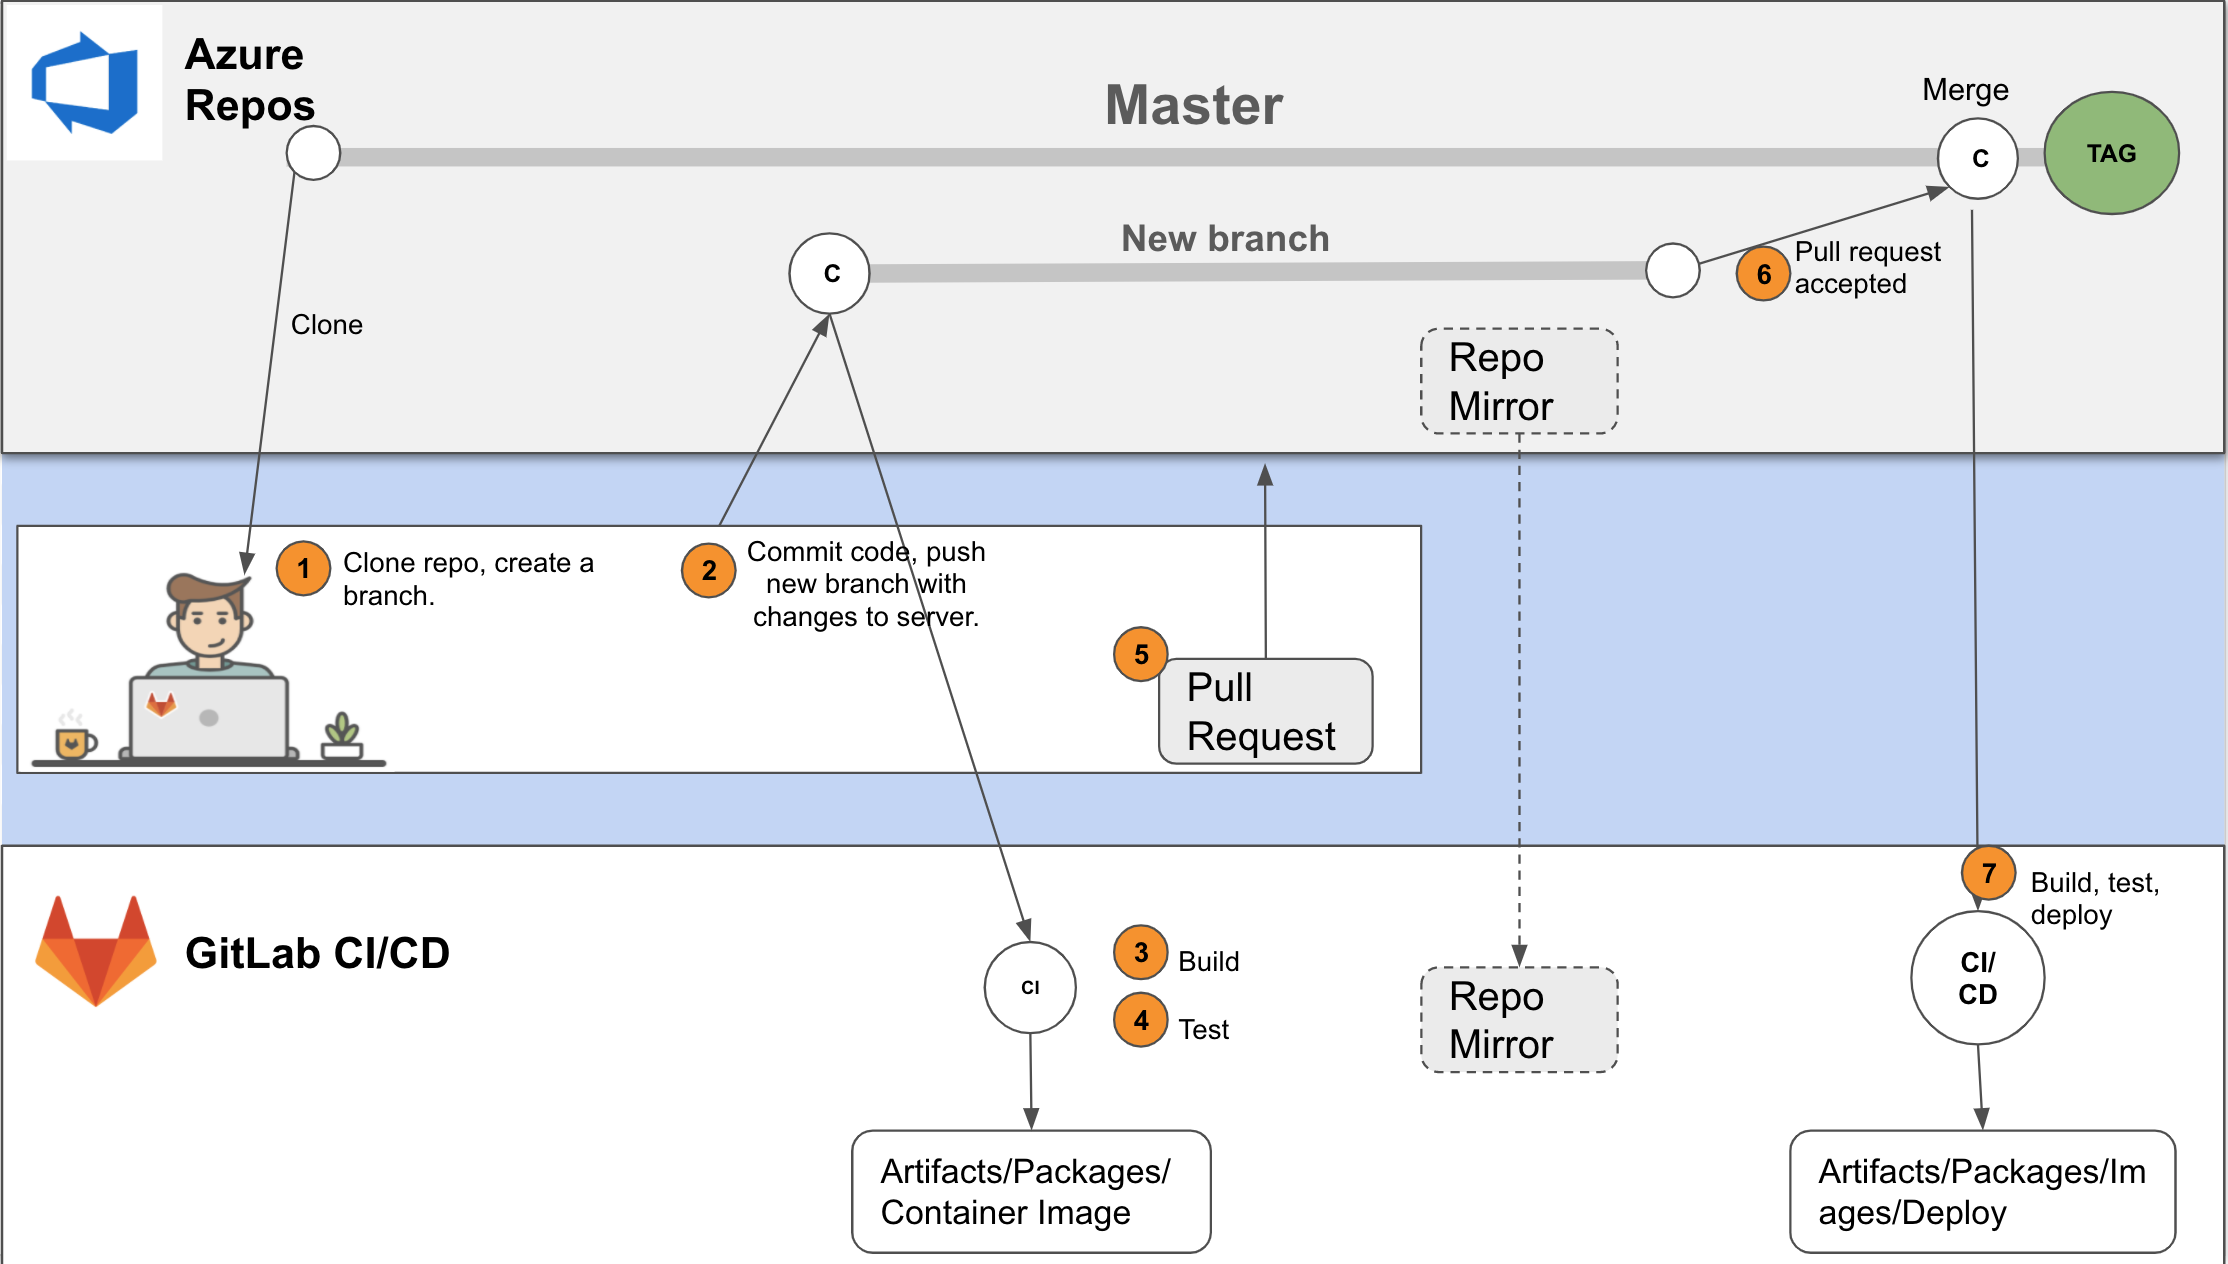 Development flow diagram